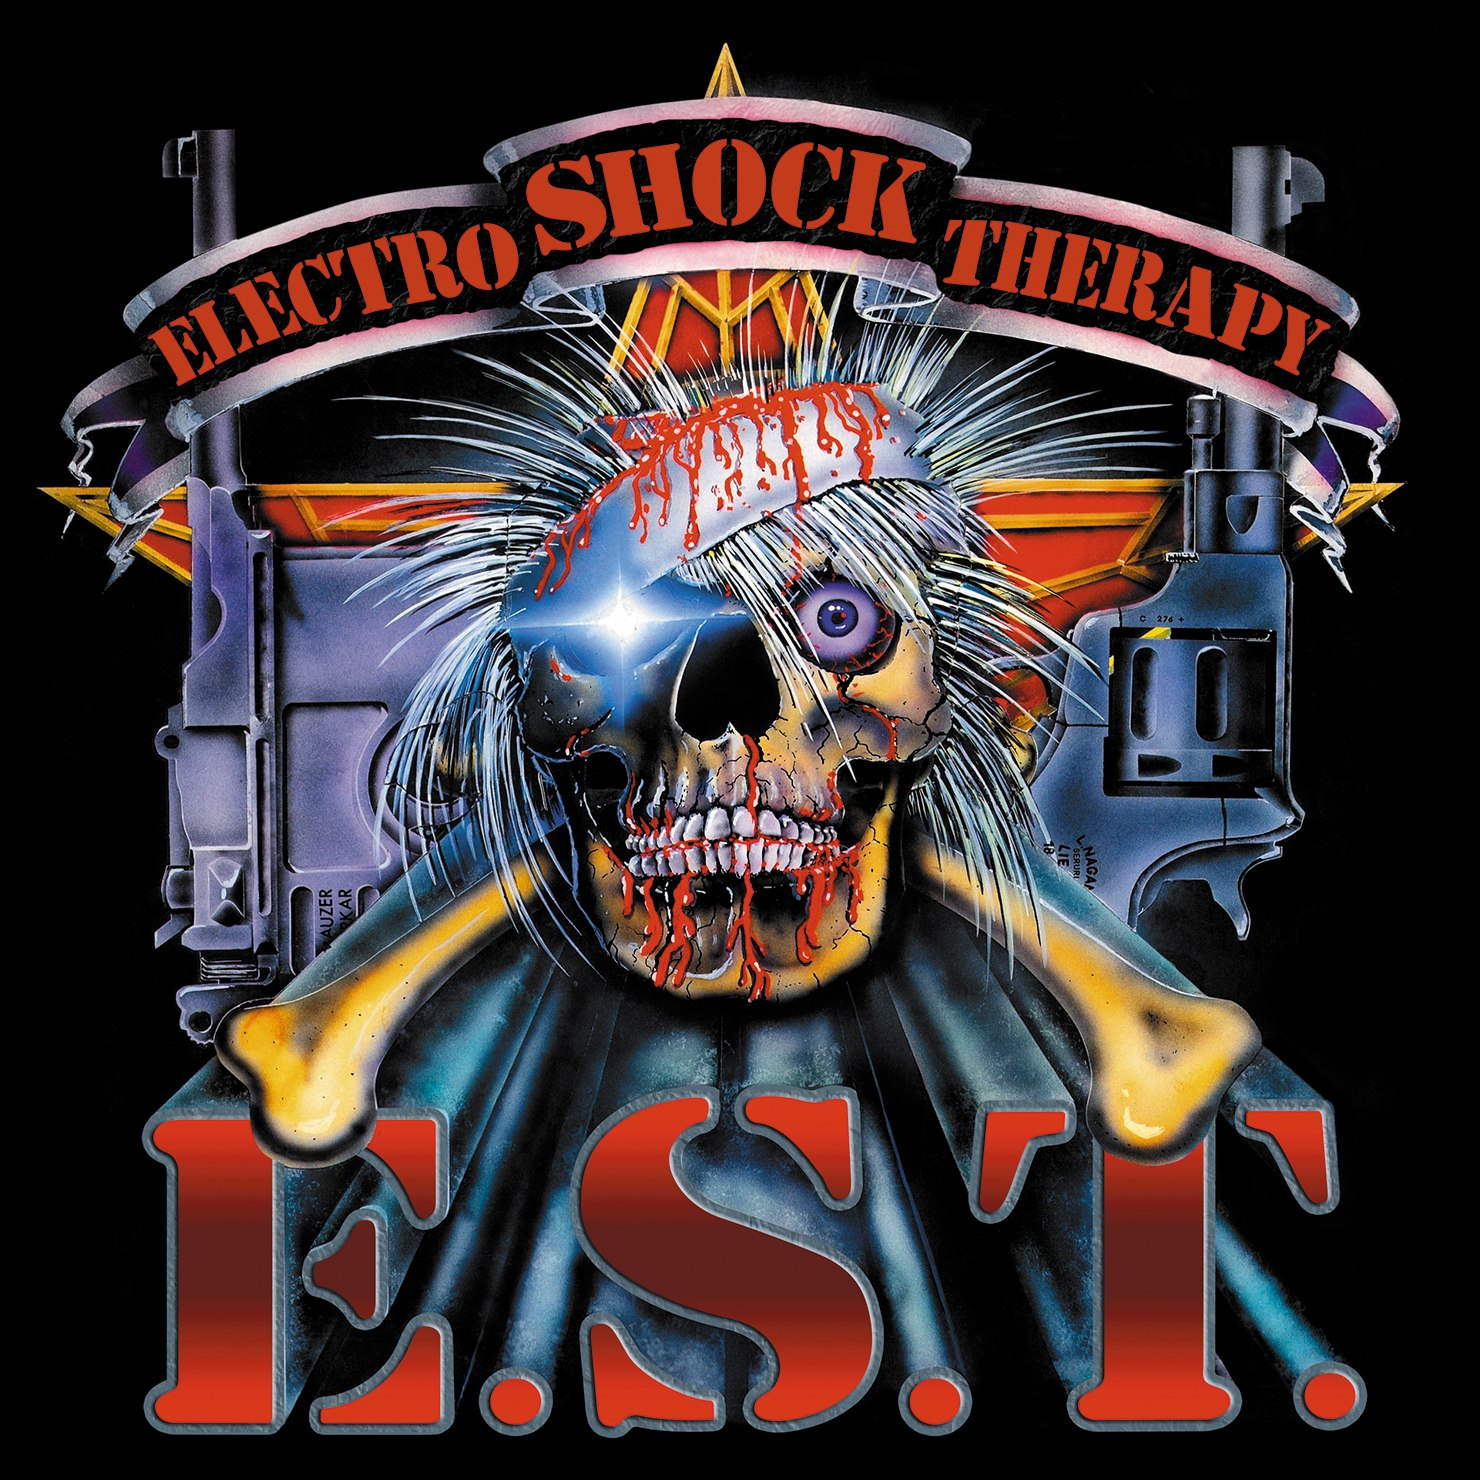 E.S.T. - Electro Shock Therapy (Limited CD Box-Set) - pre-sale